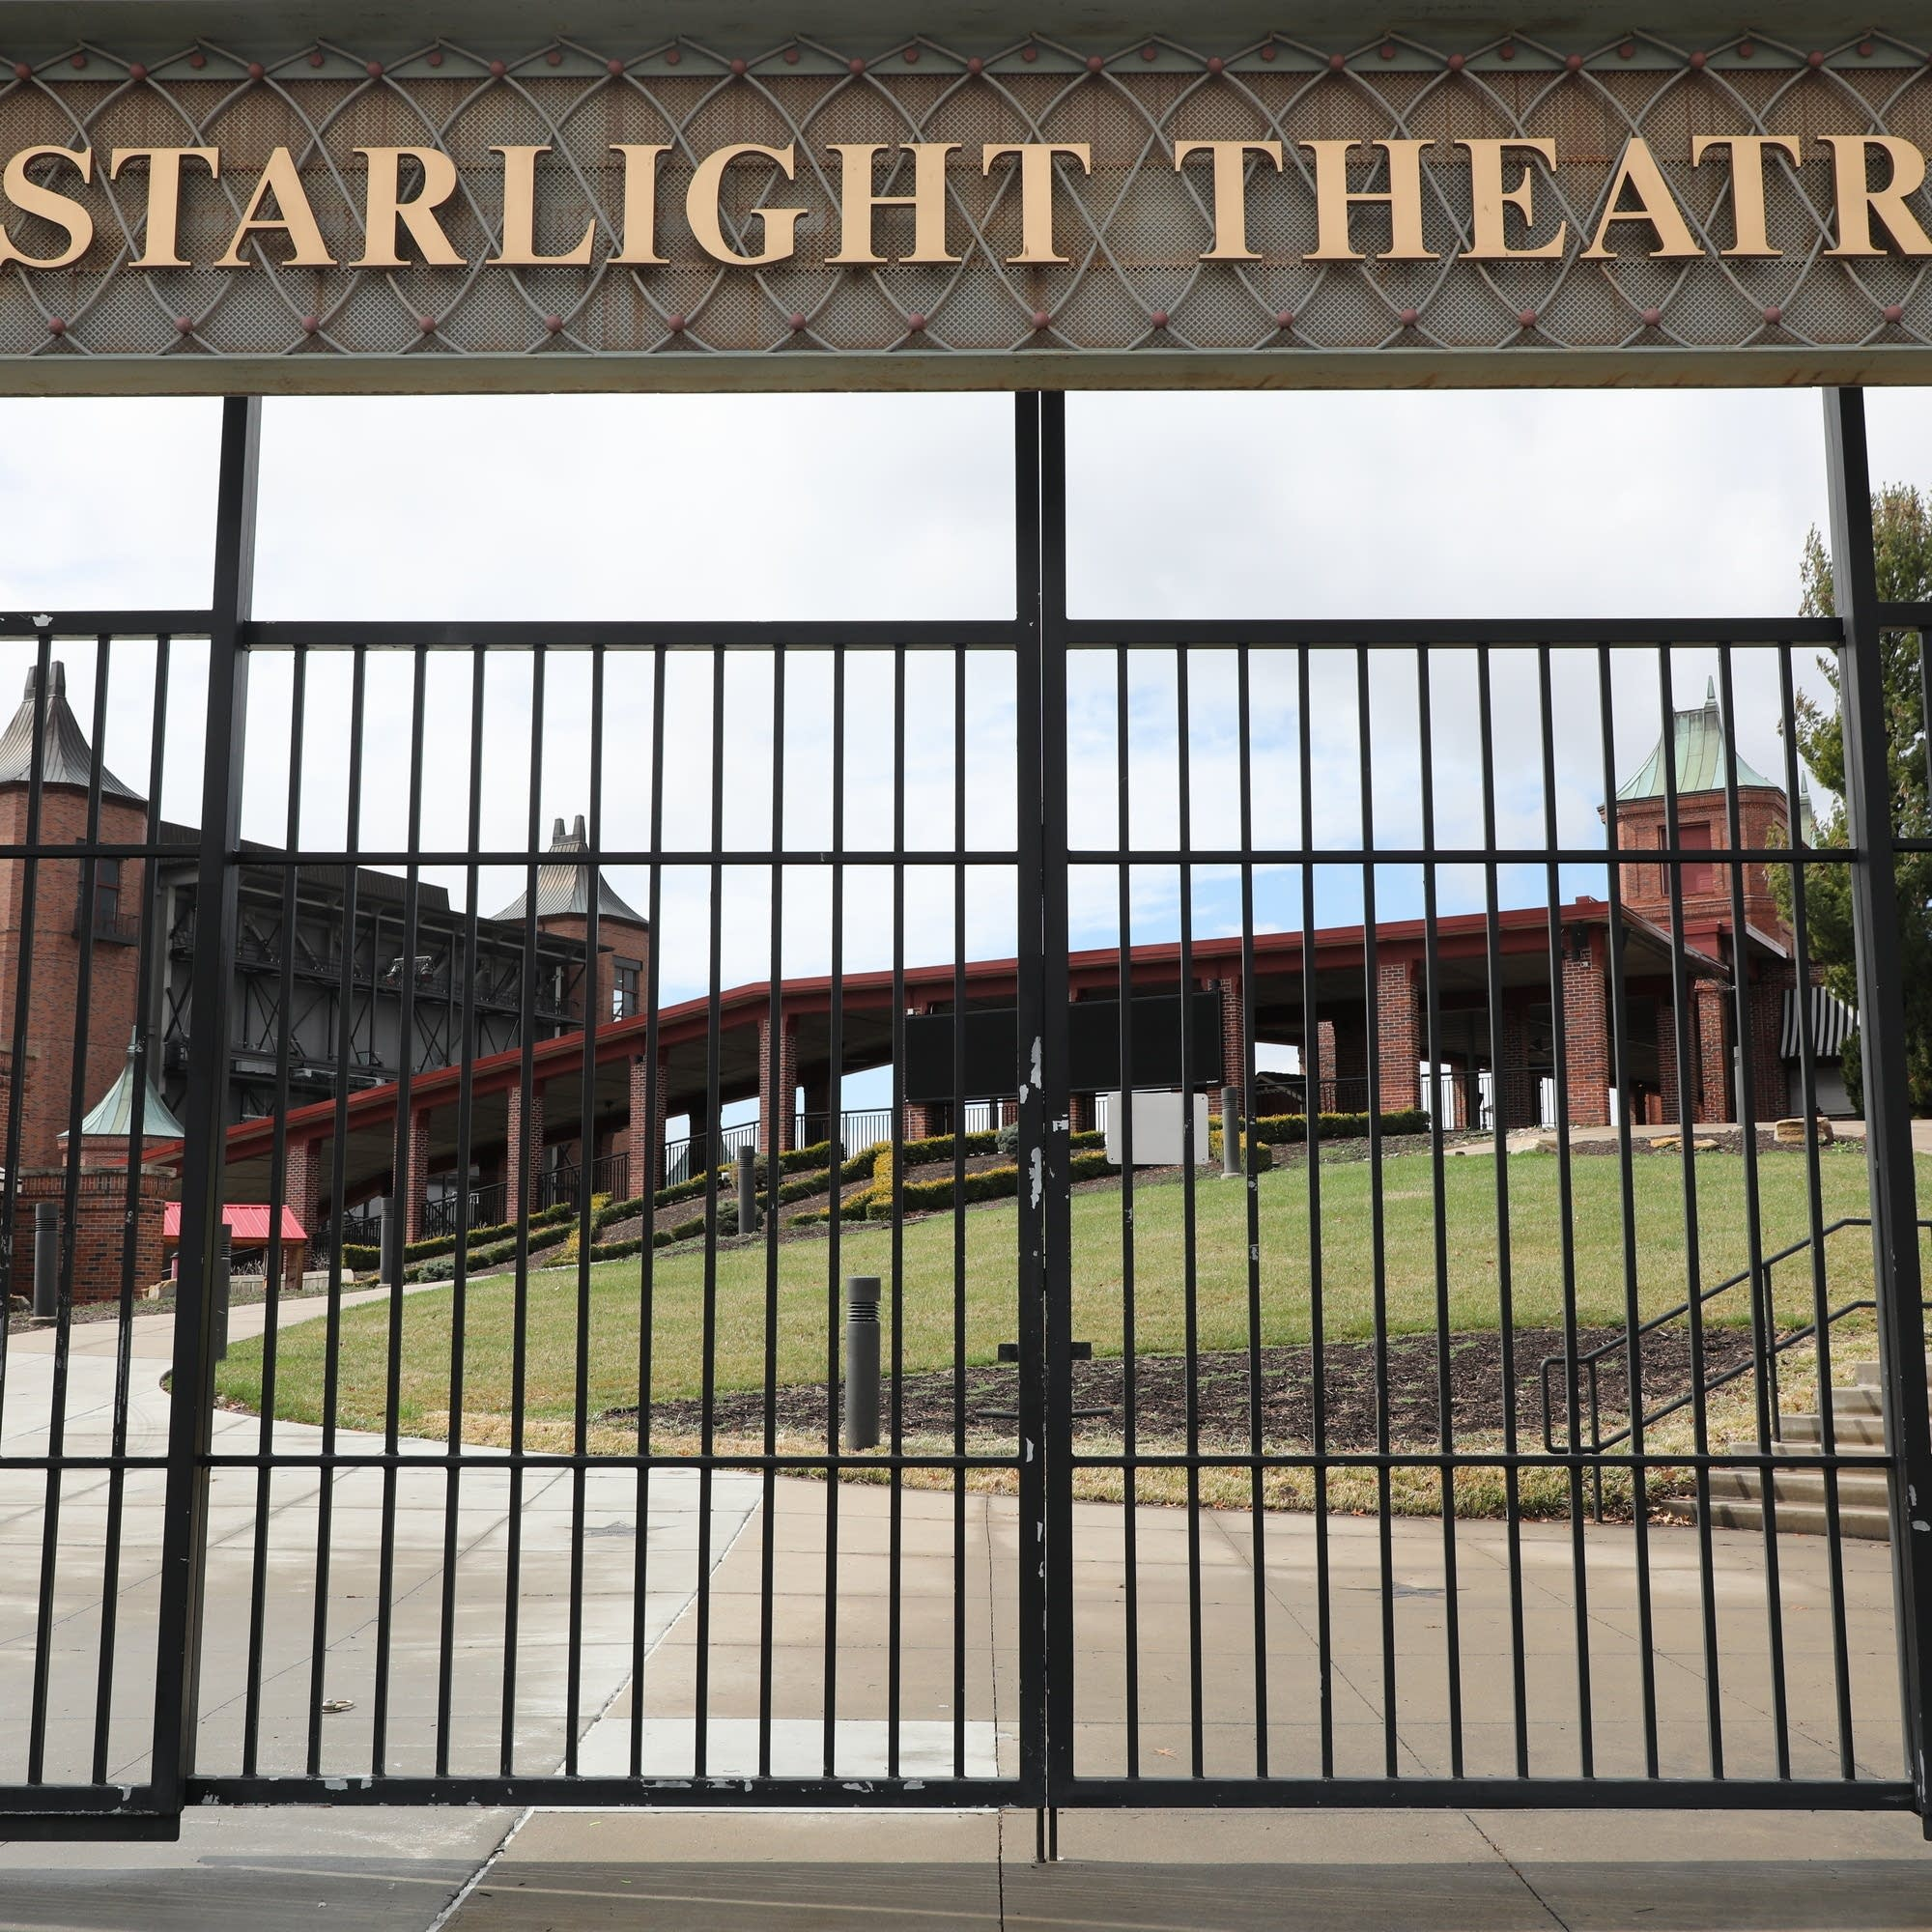 The Starlight Theatre in Kansas City, Mo.